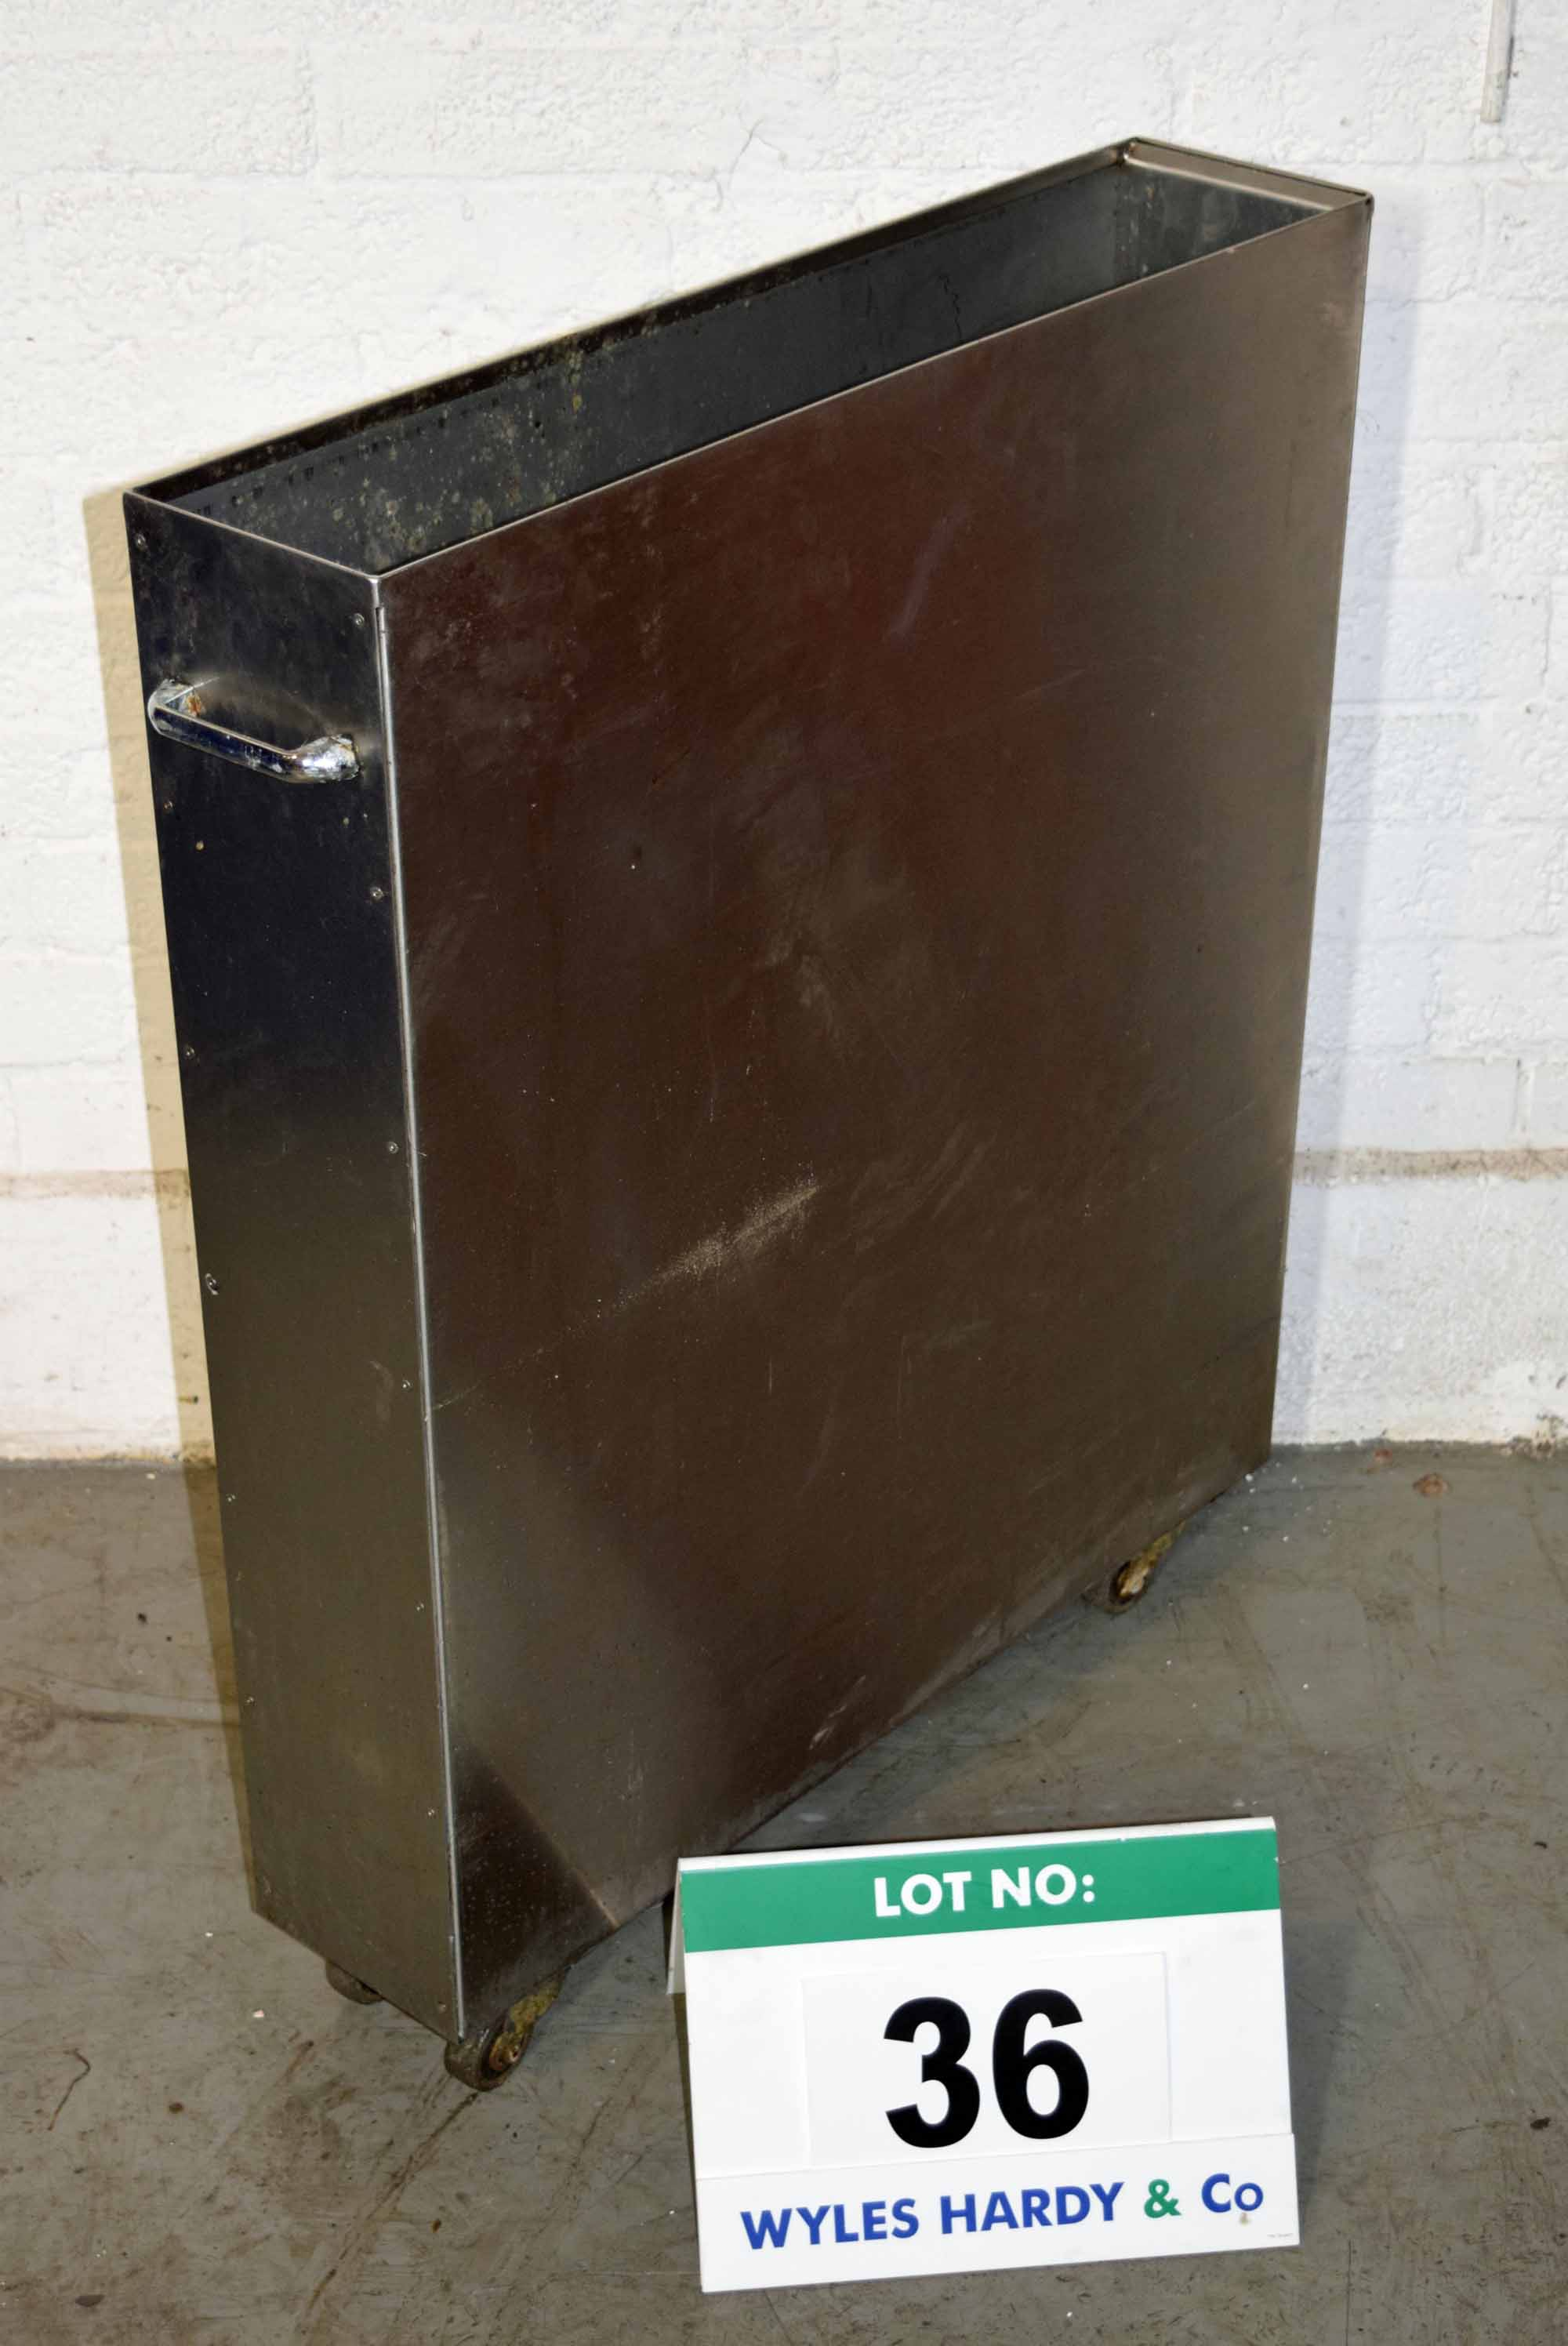 Lot 36 - An 870mm high x 150mm wide x 700mm deep Stainless Steel Scraps Bin on Castors